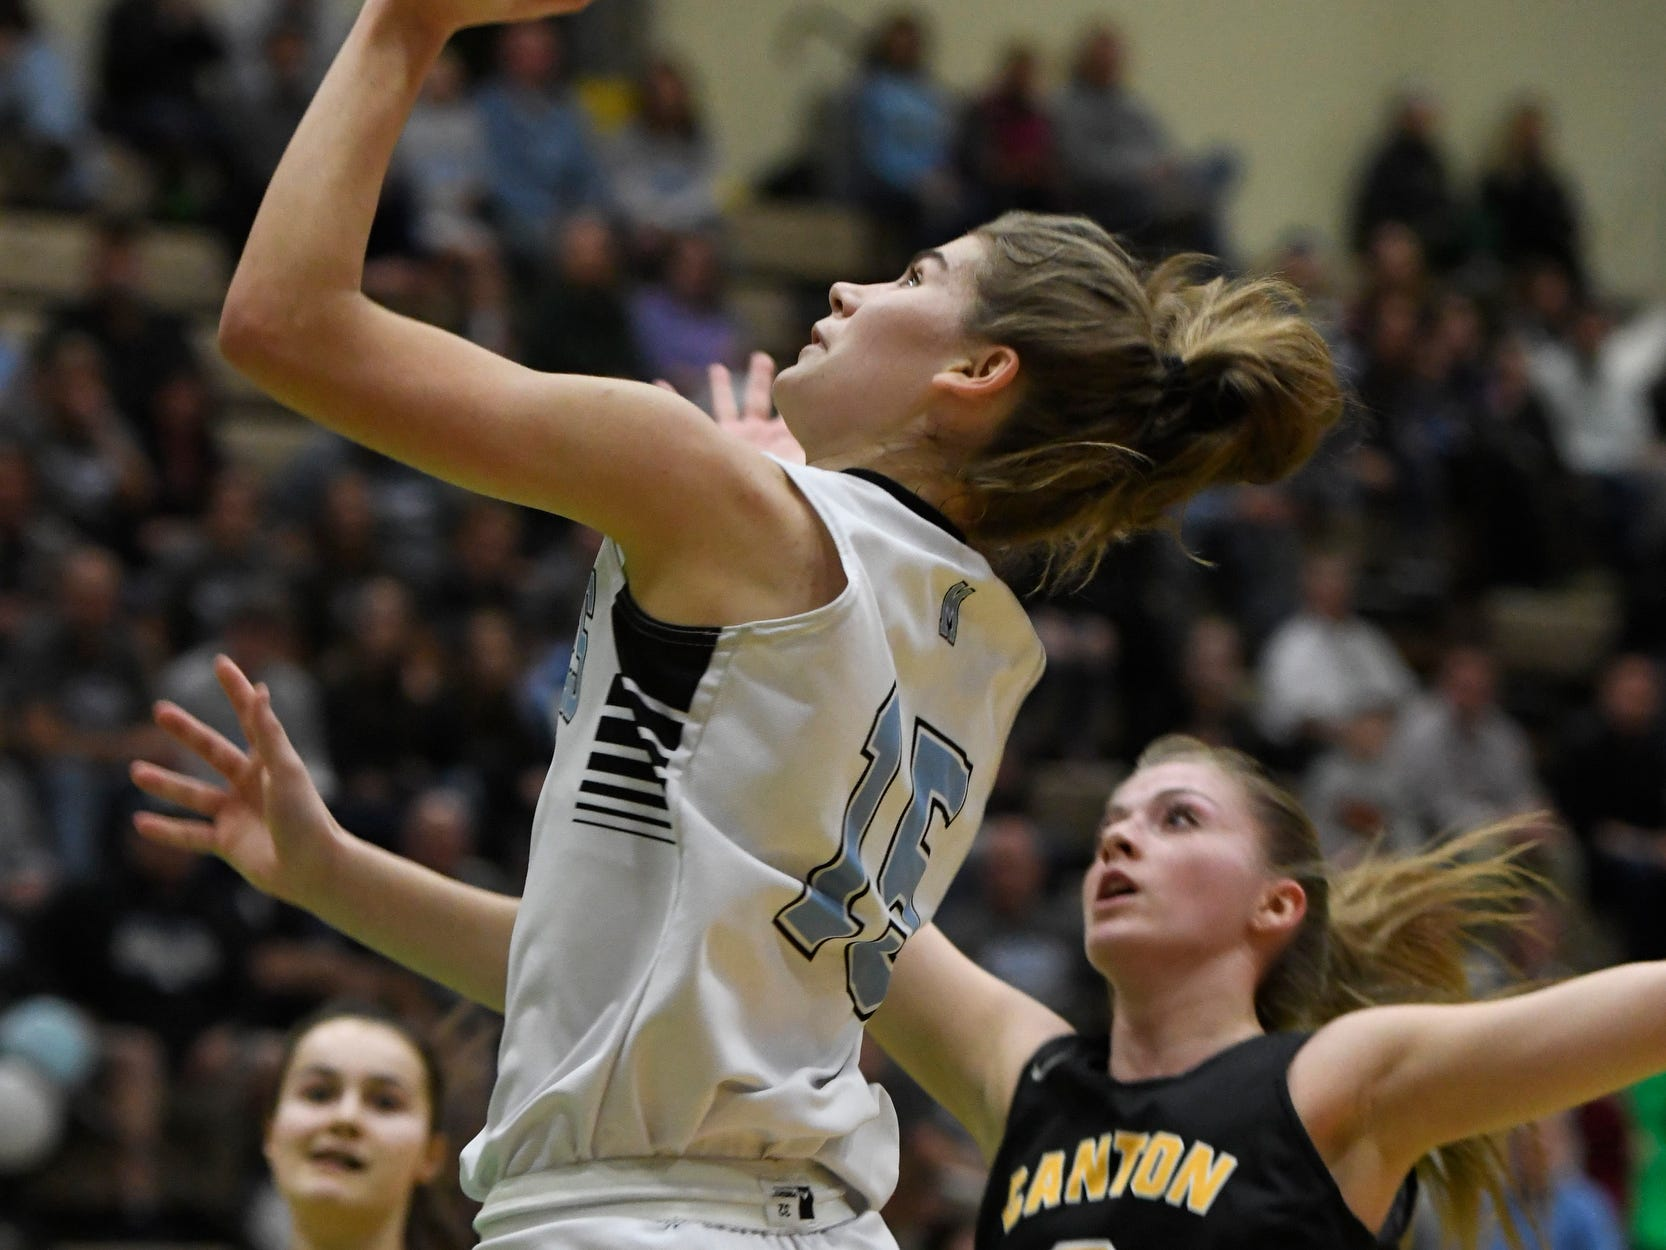 Midlakes's Cara Walker makes a shot during their Class B State Semifinal against Canton at Hudson Valley Community College in Troy, N.Y. on Friday, Mar. 15, 2019.